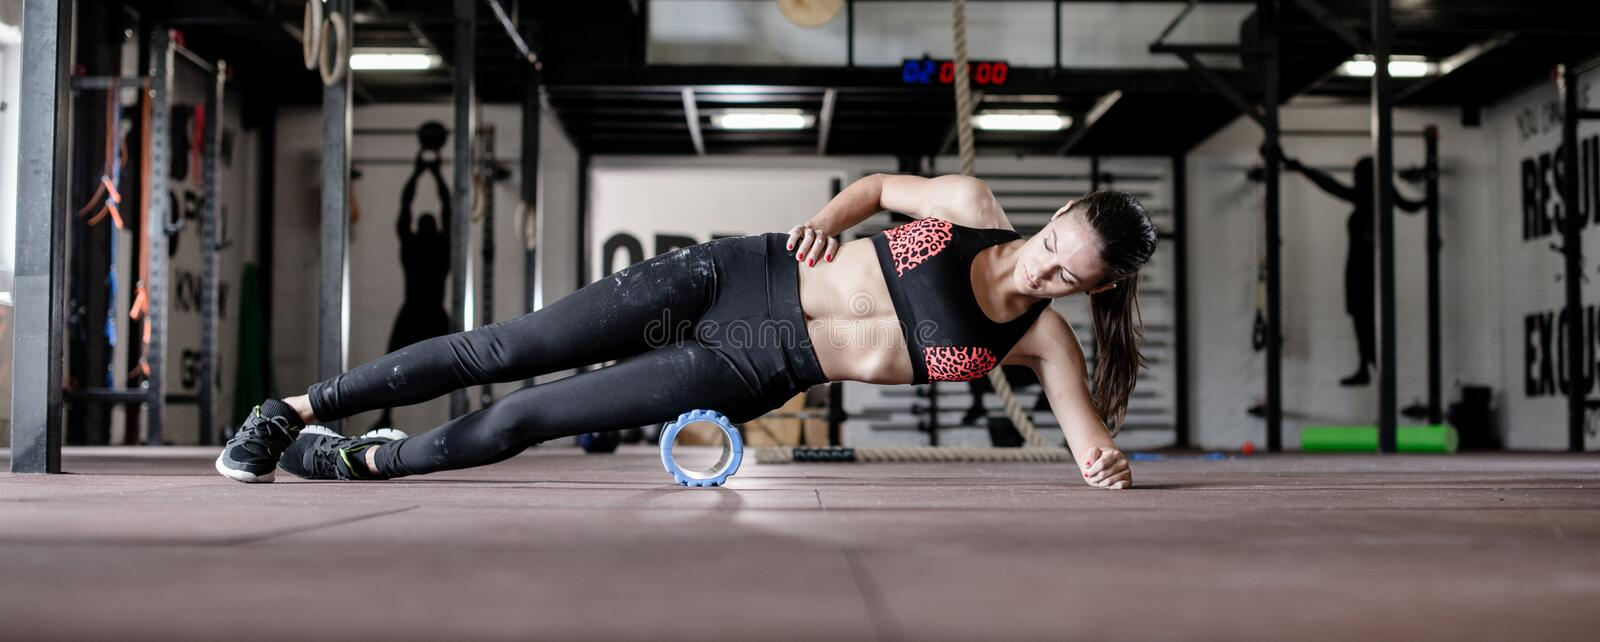 Young woman works out on gym floor. Girl works out on gym floor royalty free stock photos